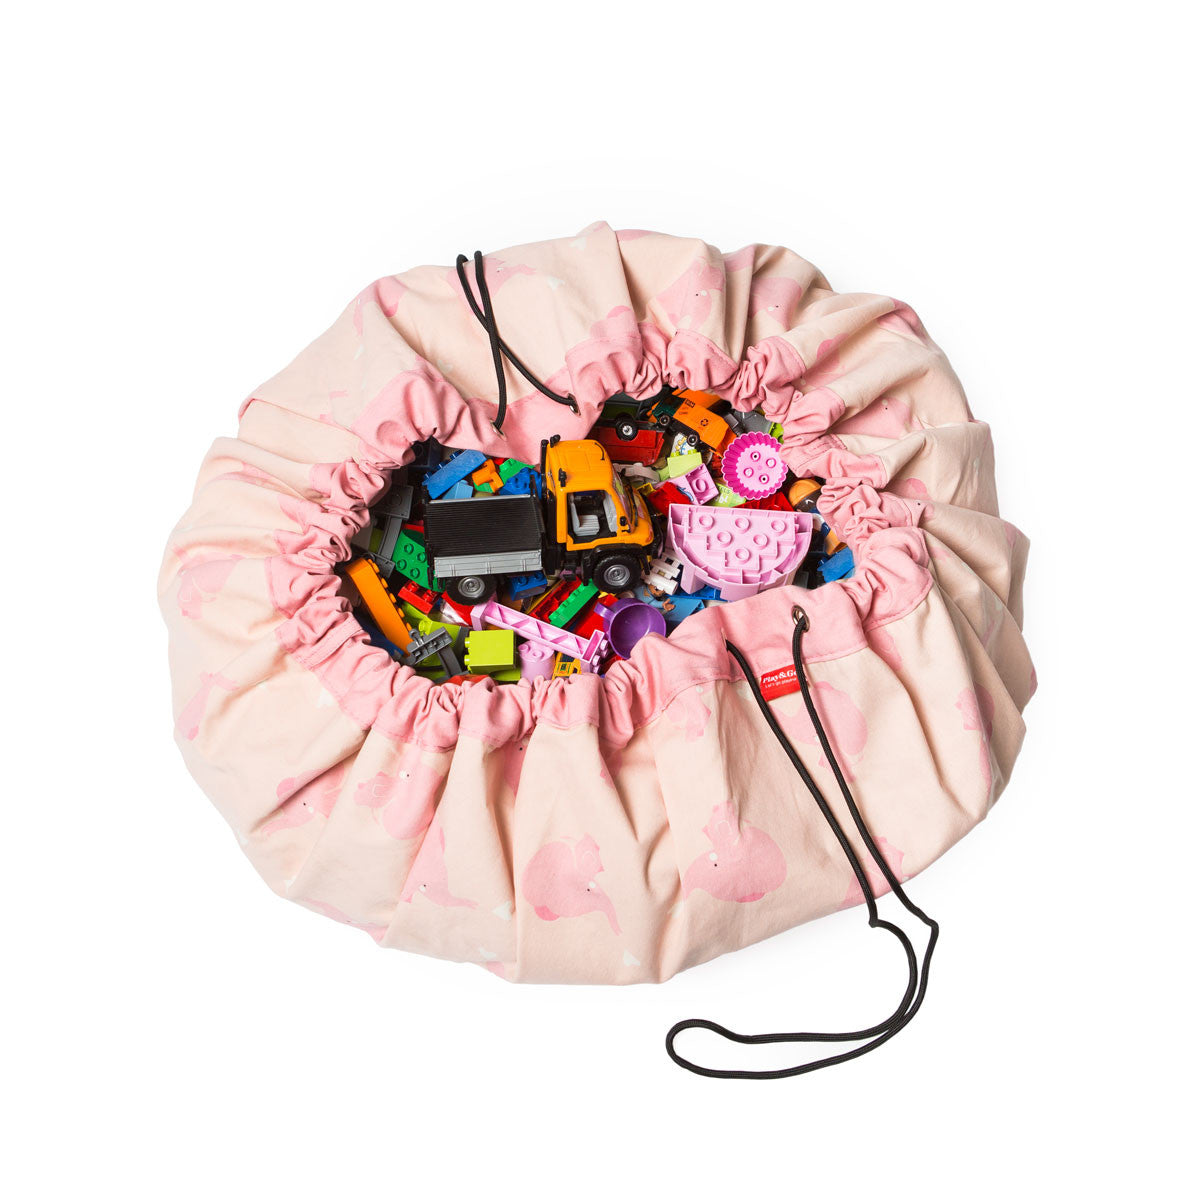 PINK ELEPHANT Toy Storage Bag